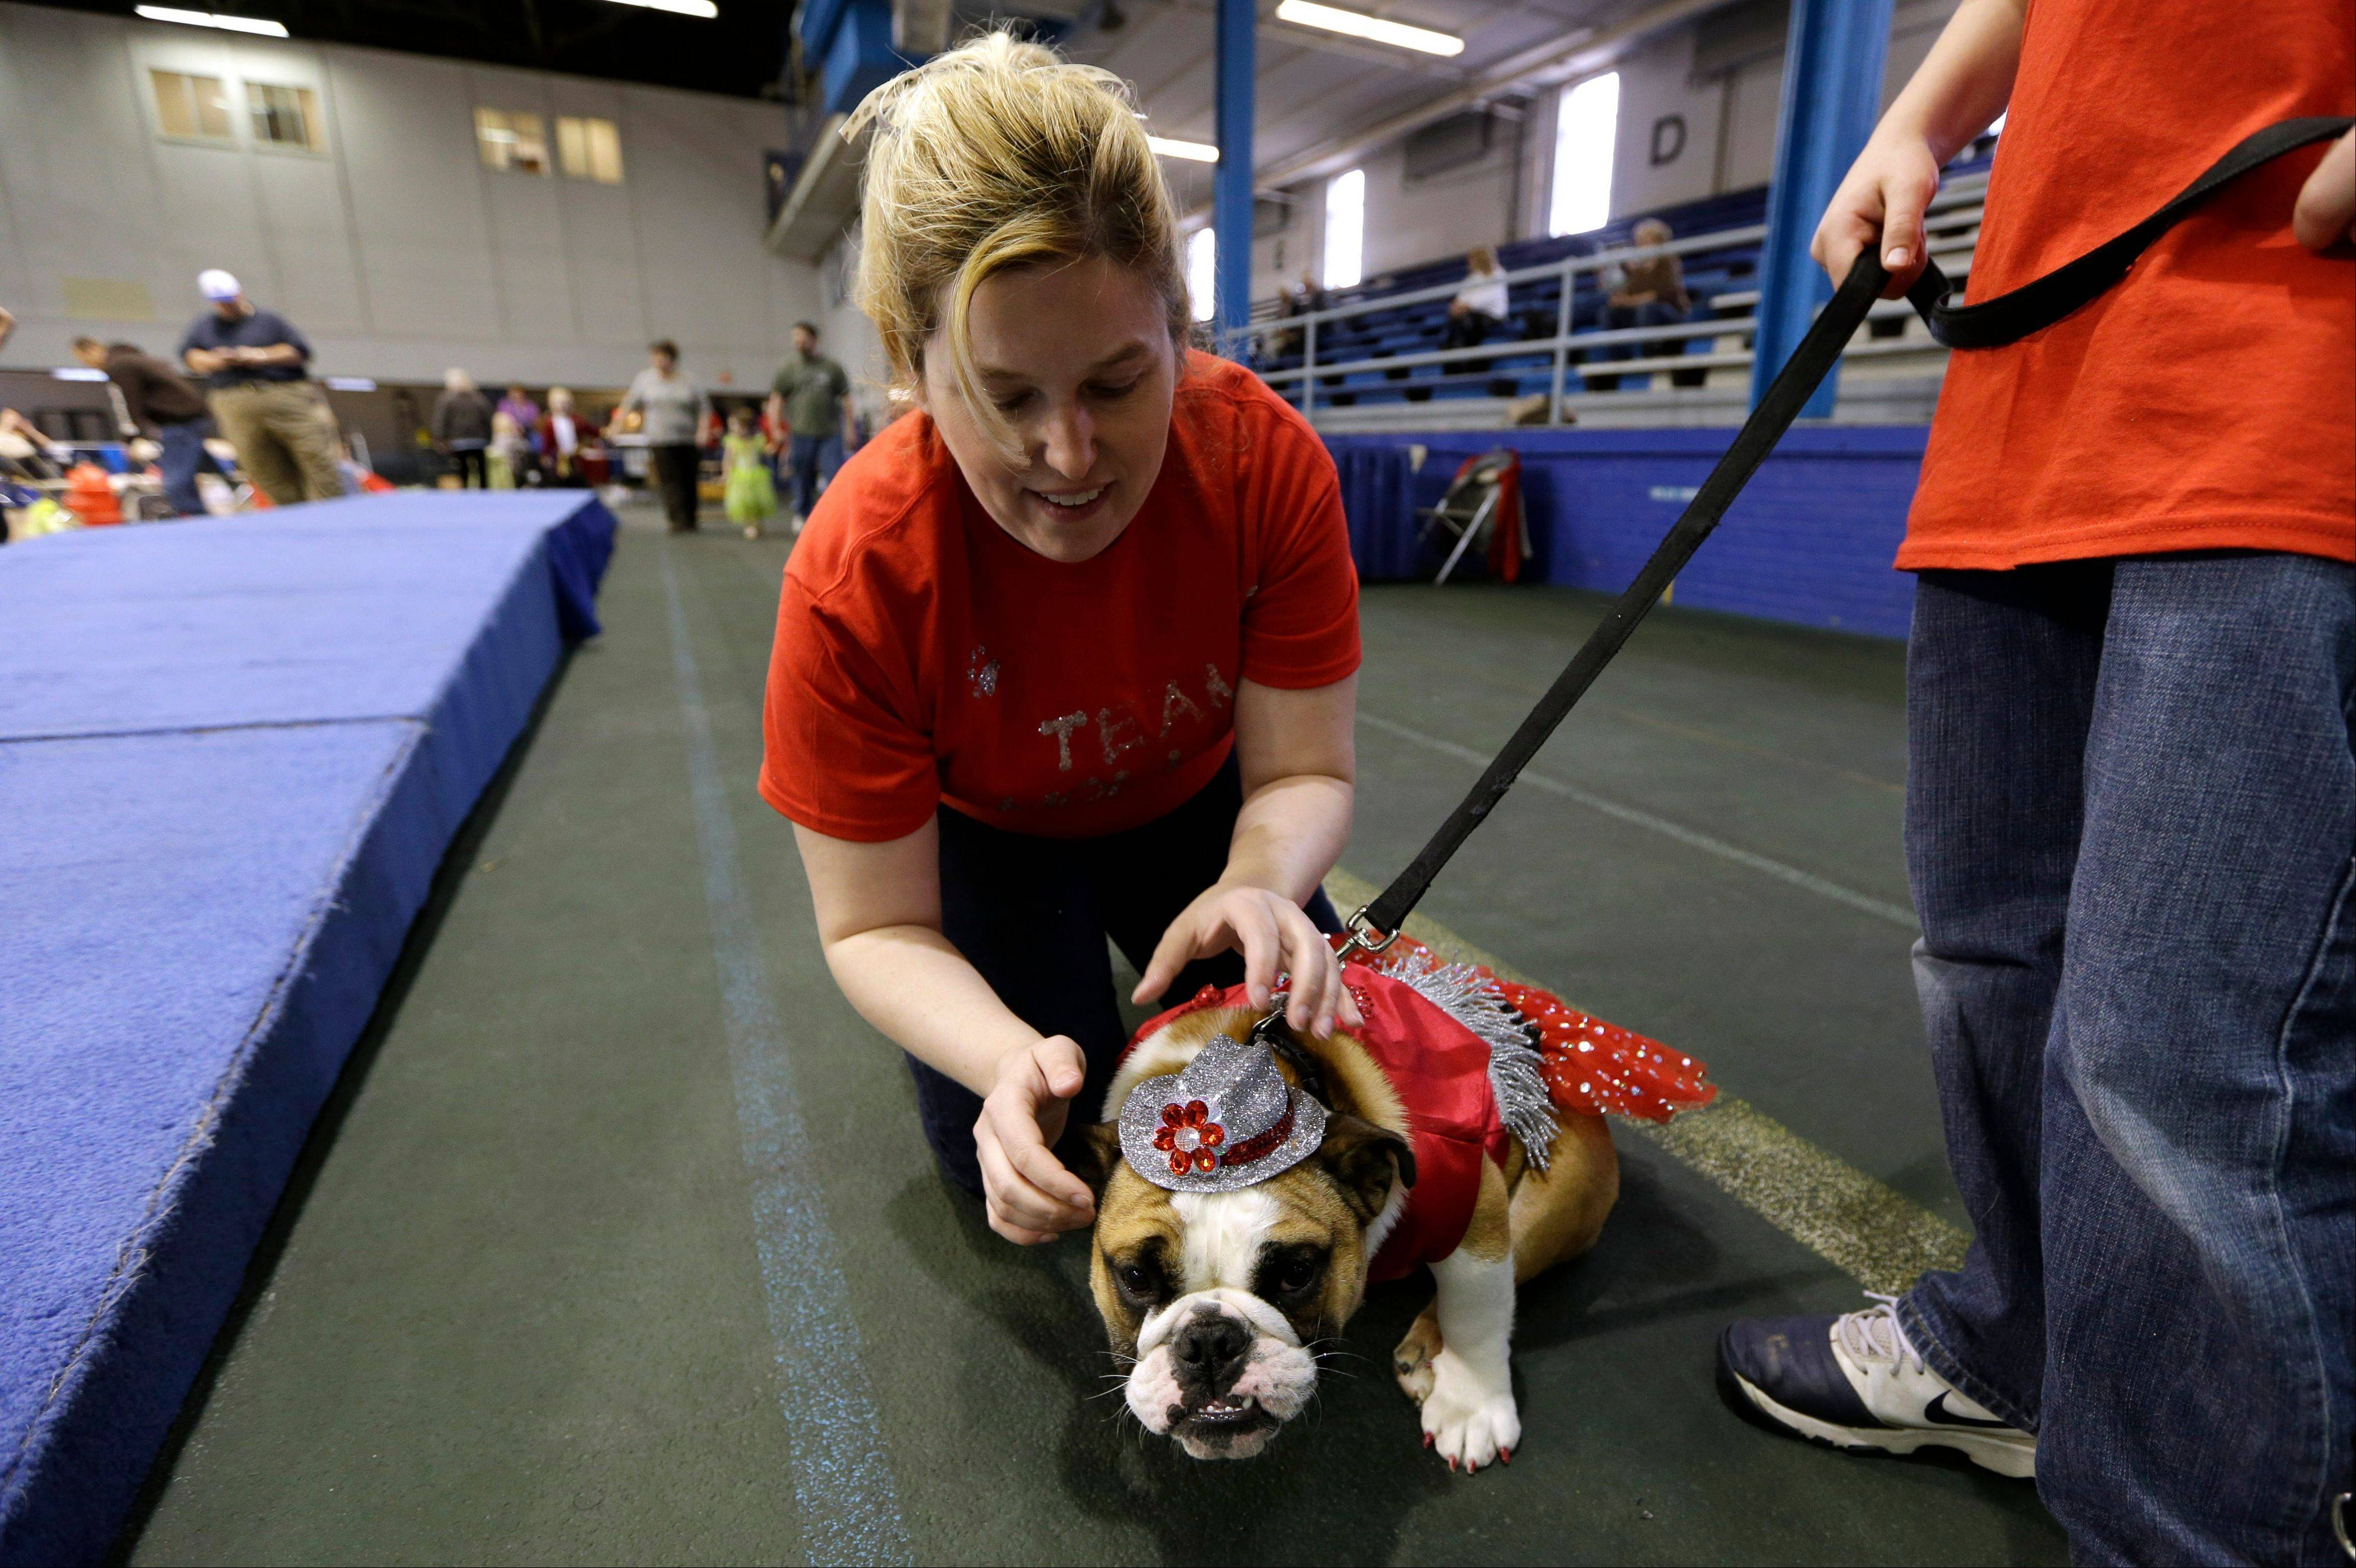 Laura Kares, of Omaha, Neb., puts a hat on her bulldog Molly during the 34th annual Drake Relays Beautiful Bulldog Contest, Monday, April 22, 2013, in Des Moines, Iowa. The pageant kicks off the Drake Relays festivities at Drake University where a bulldog is the mascot.